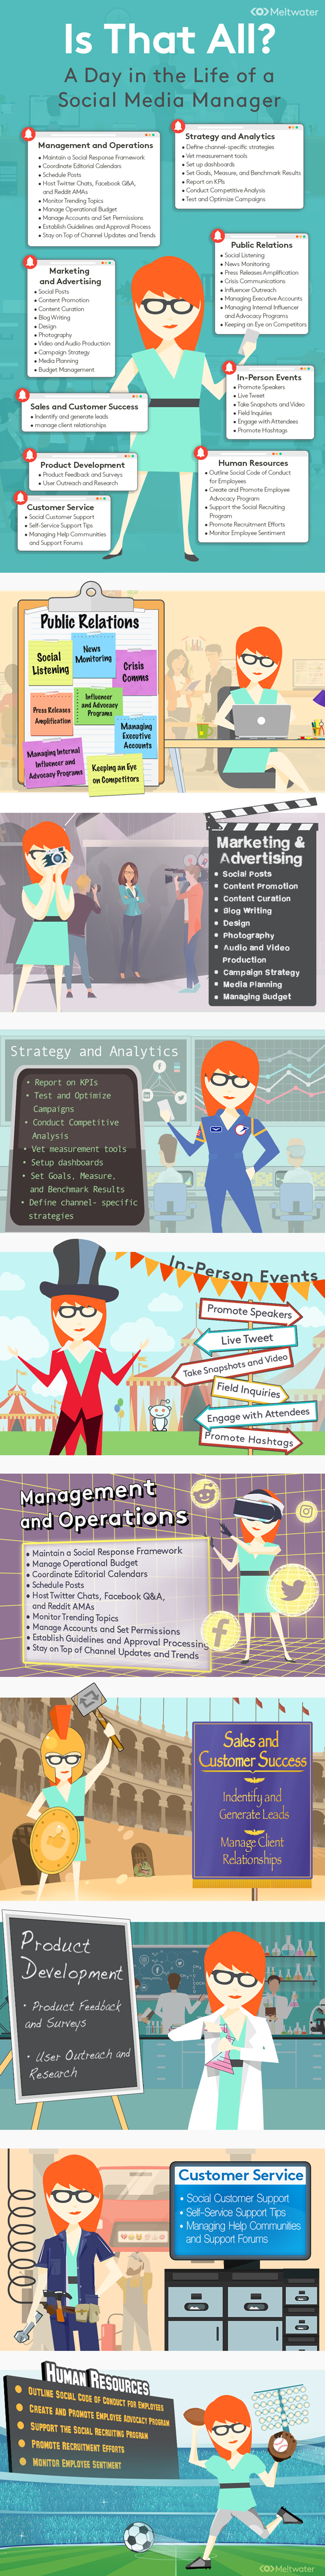 Infographic: Life Of A Social Media Manager